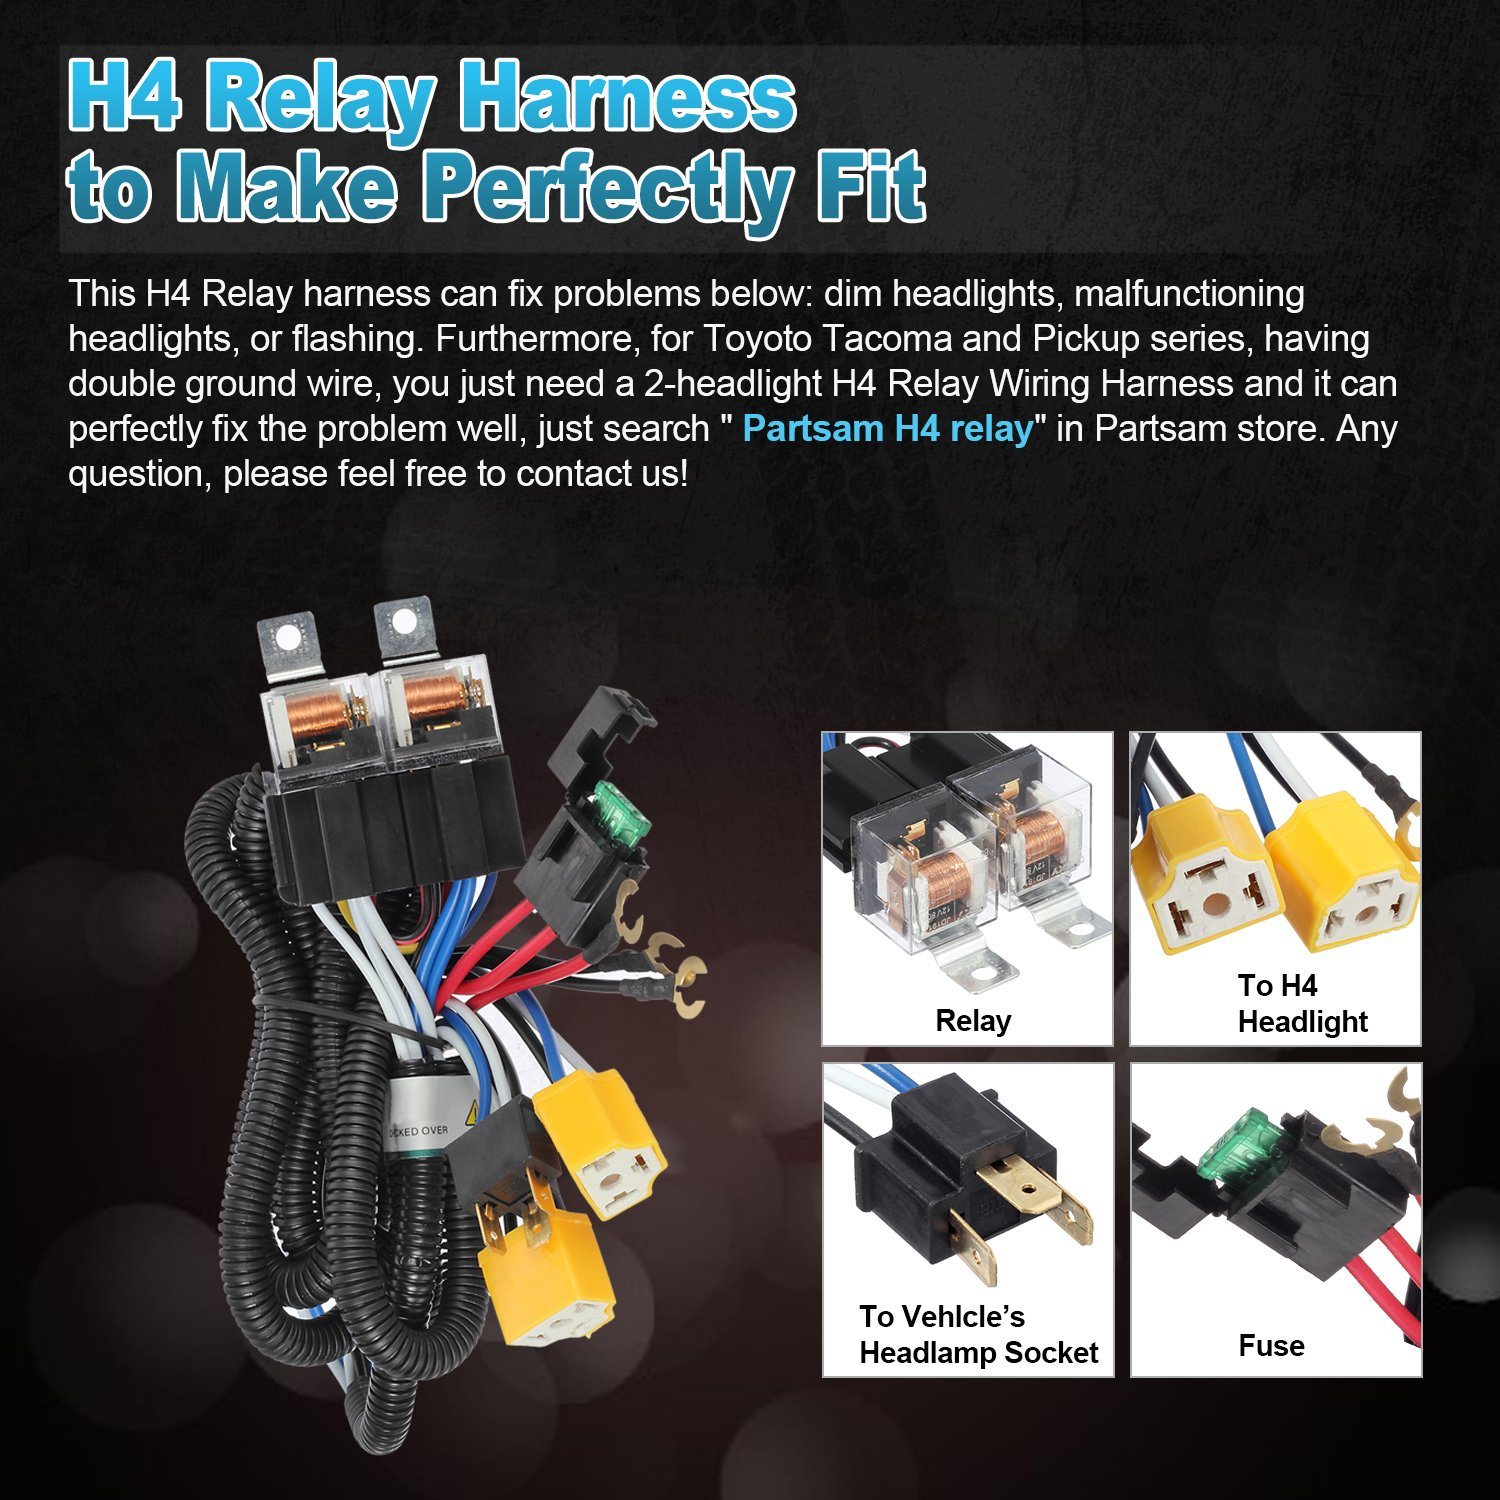 Partsam 2pcs Rectangle H6054 Led Headlights 5x7 7x6 Headlamp Hi Low Chevy Wiring Harness Problems Sealed Beam Replacement For S10 Blazer Express Van H4 9003 Plug 6054 H5054 Jeep